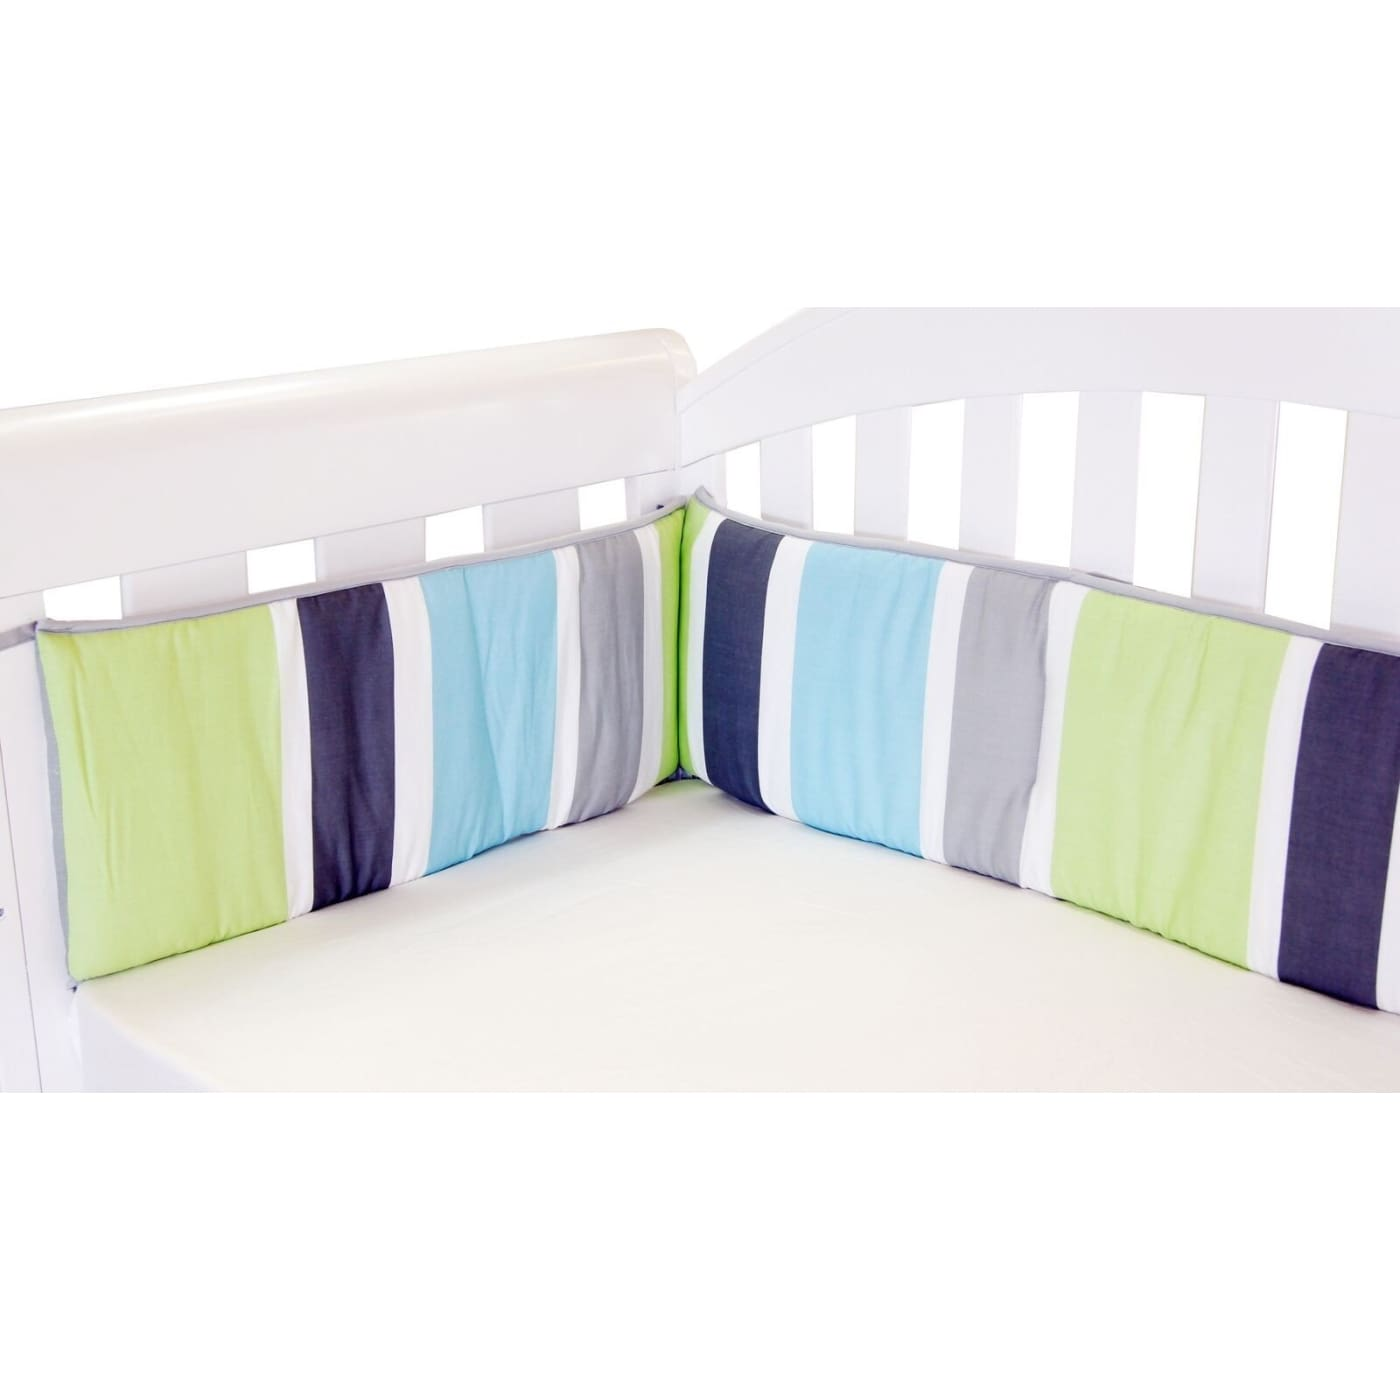 Amani Bebe Summer Stripe Cot Bumper - Lime - NURSERY & BEDTIME - COT BUMPERS